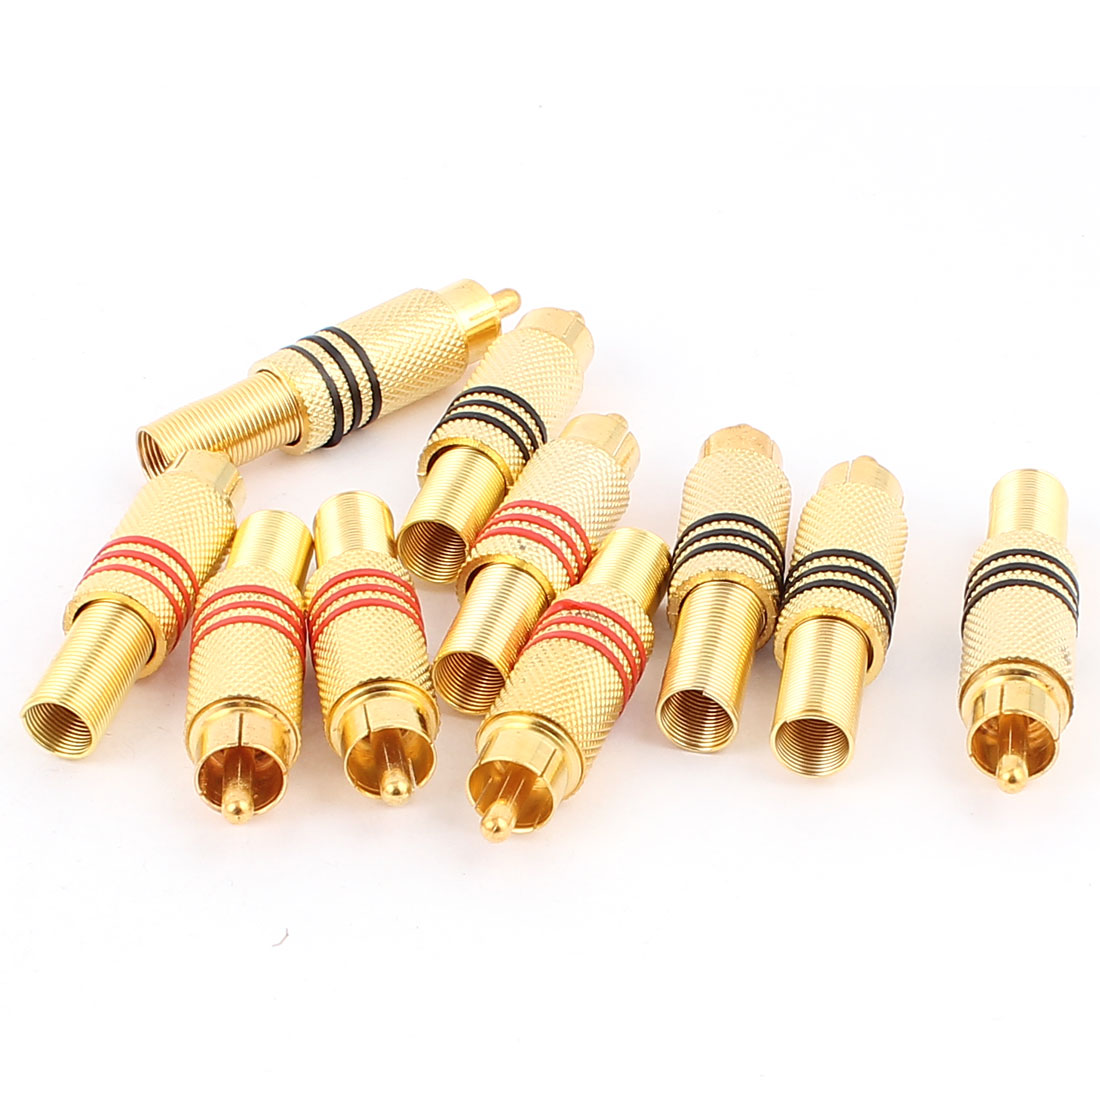 10pcs Metal Solderless Spring Male RCA Jack Plug Audio Coaxial Cable Adapter Connector